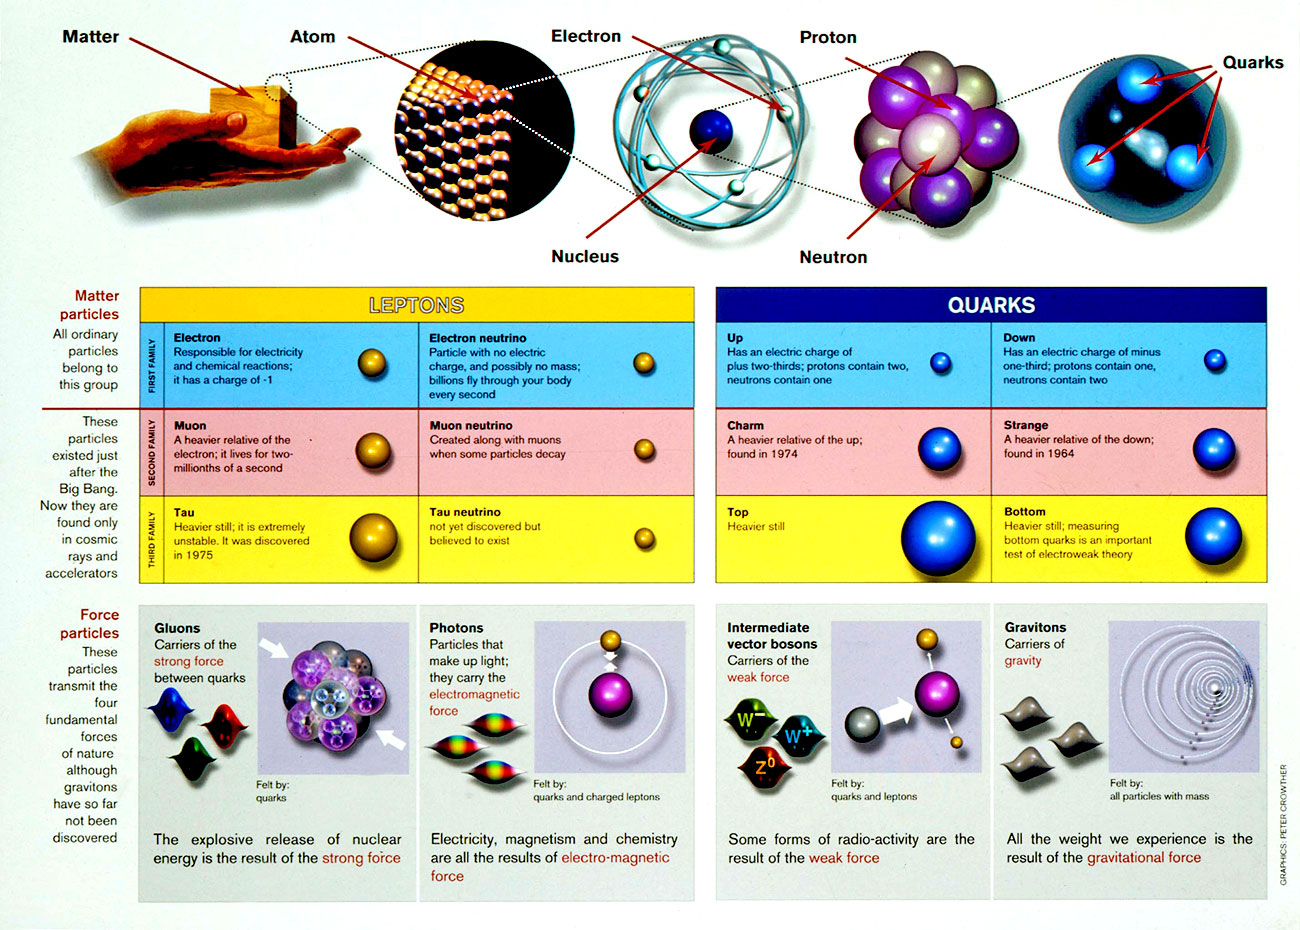 3 09 particle accelerator and fundamental forces